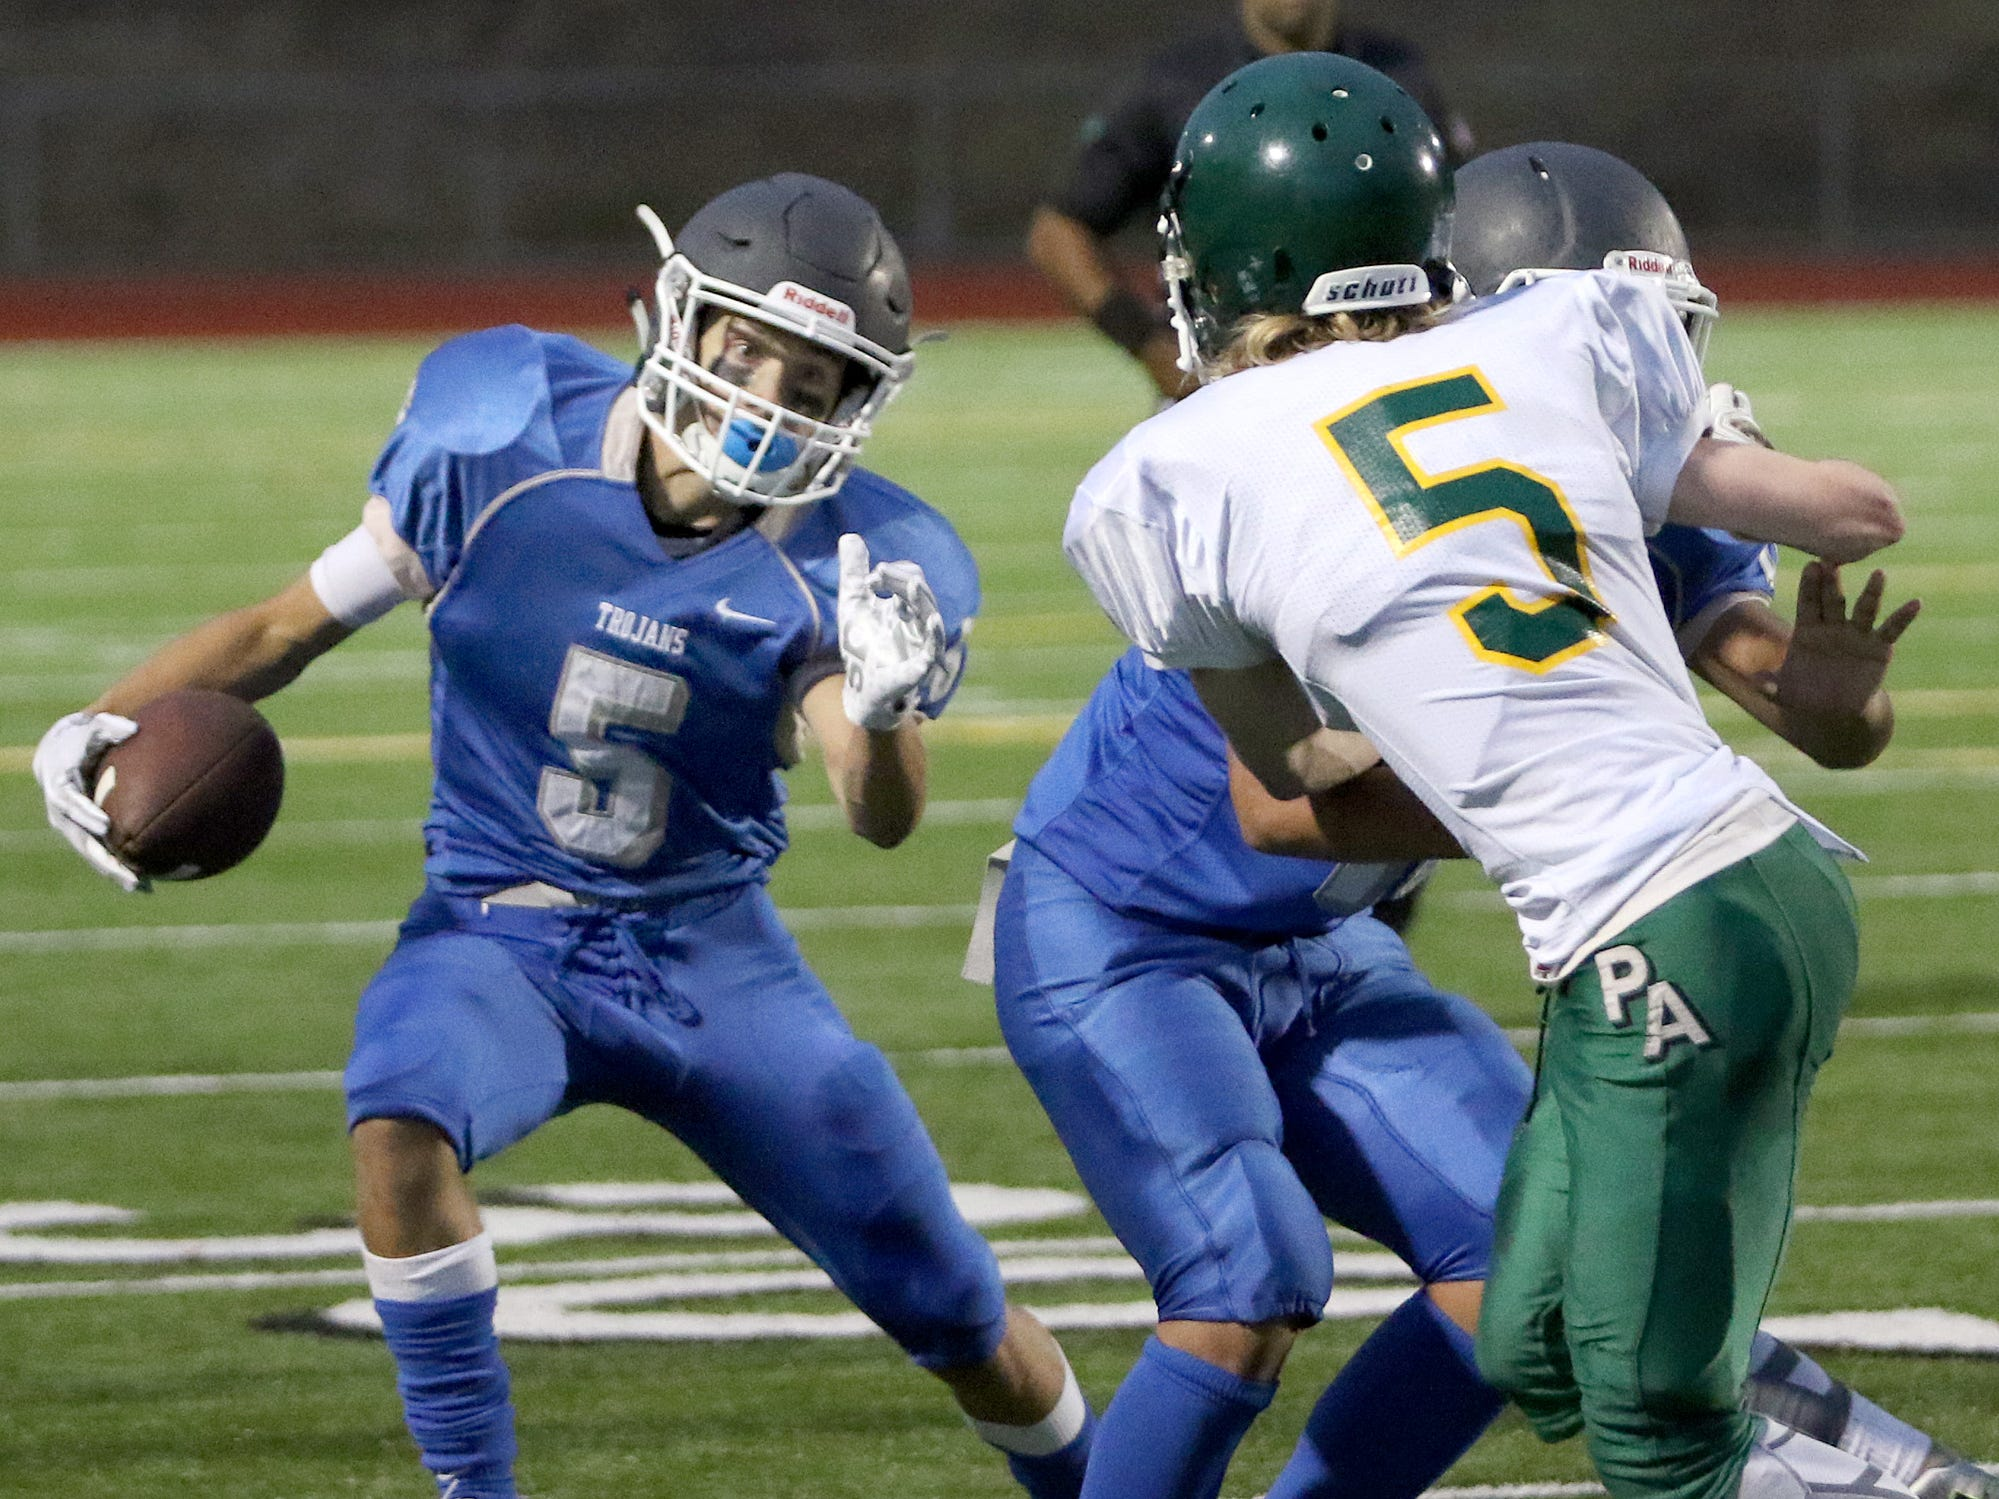 Olympic's Kaiden Rivers carries the ball for the Trojans' junior varsity team during Monday's game against Port Angeles. Olympic has a total of 55 players in its football program this season.